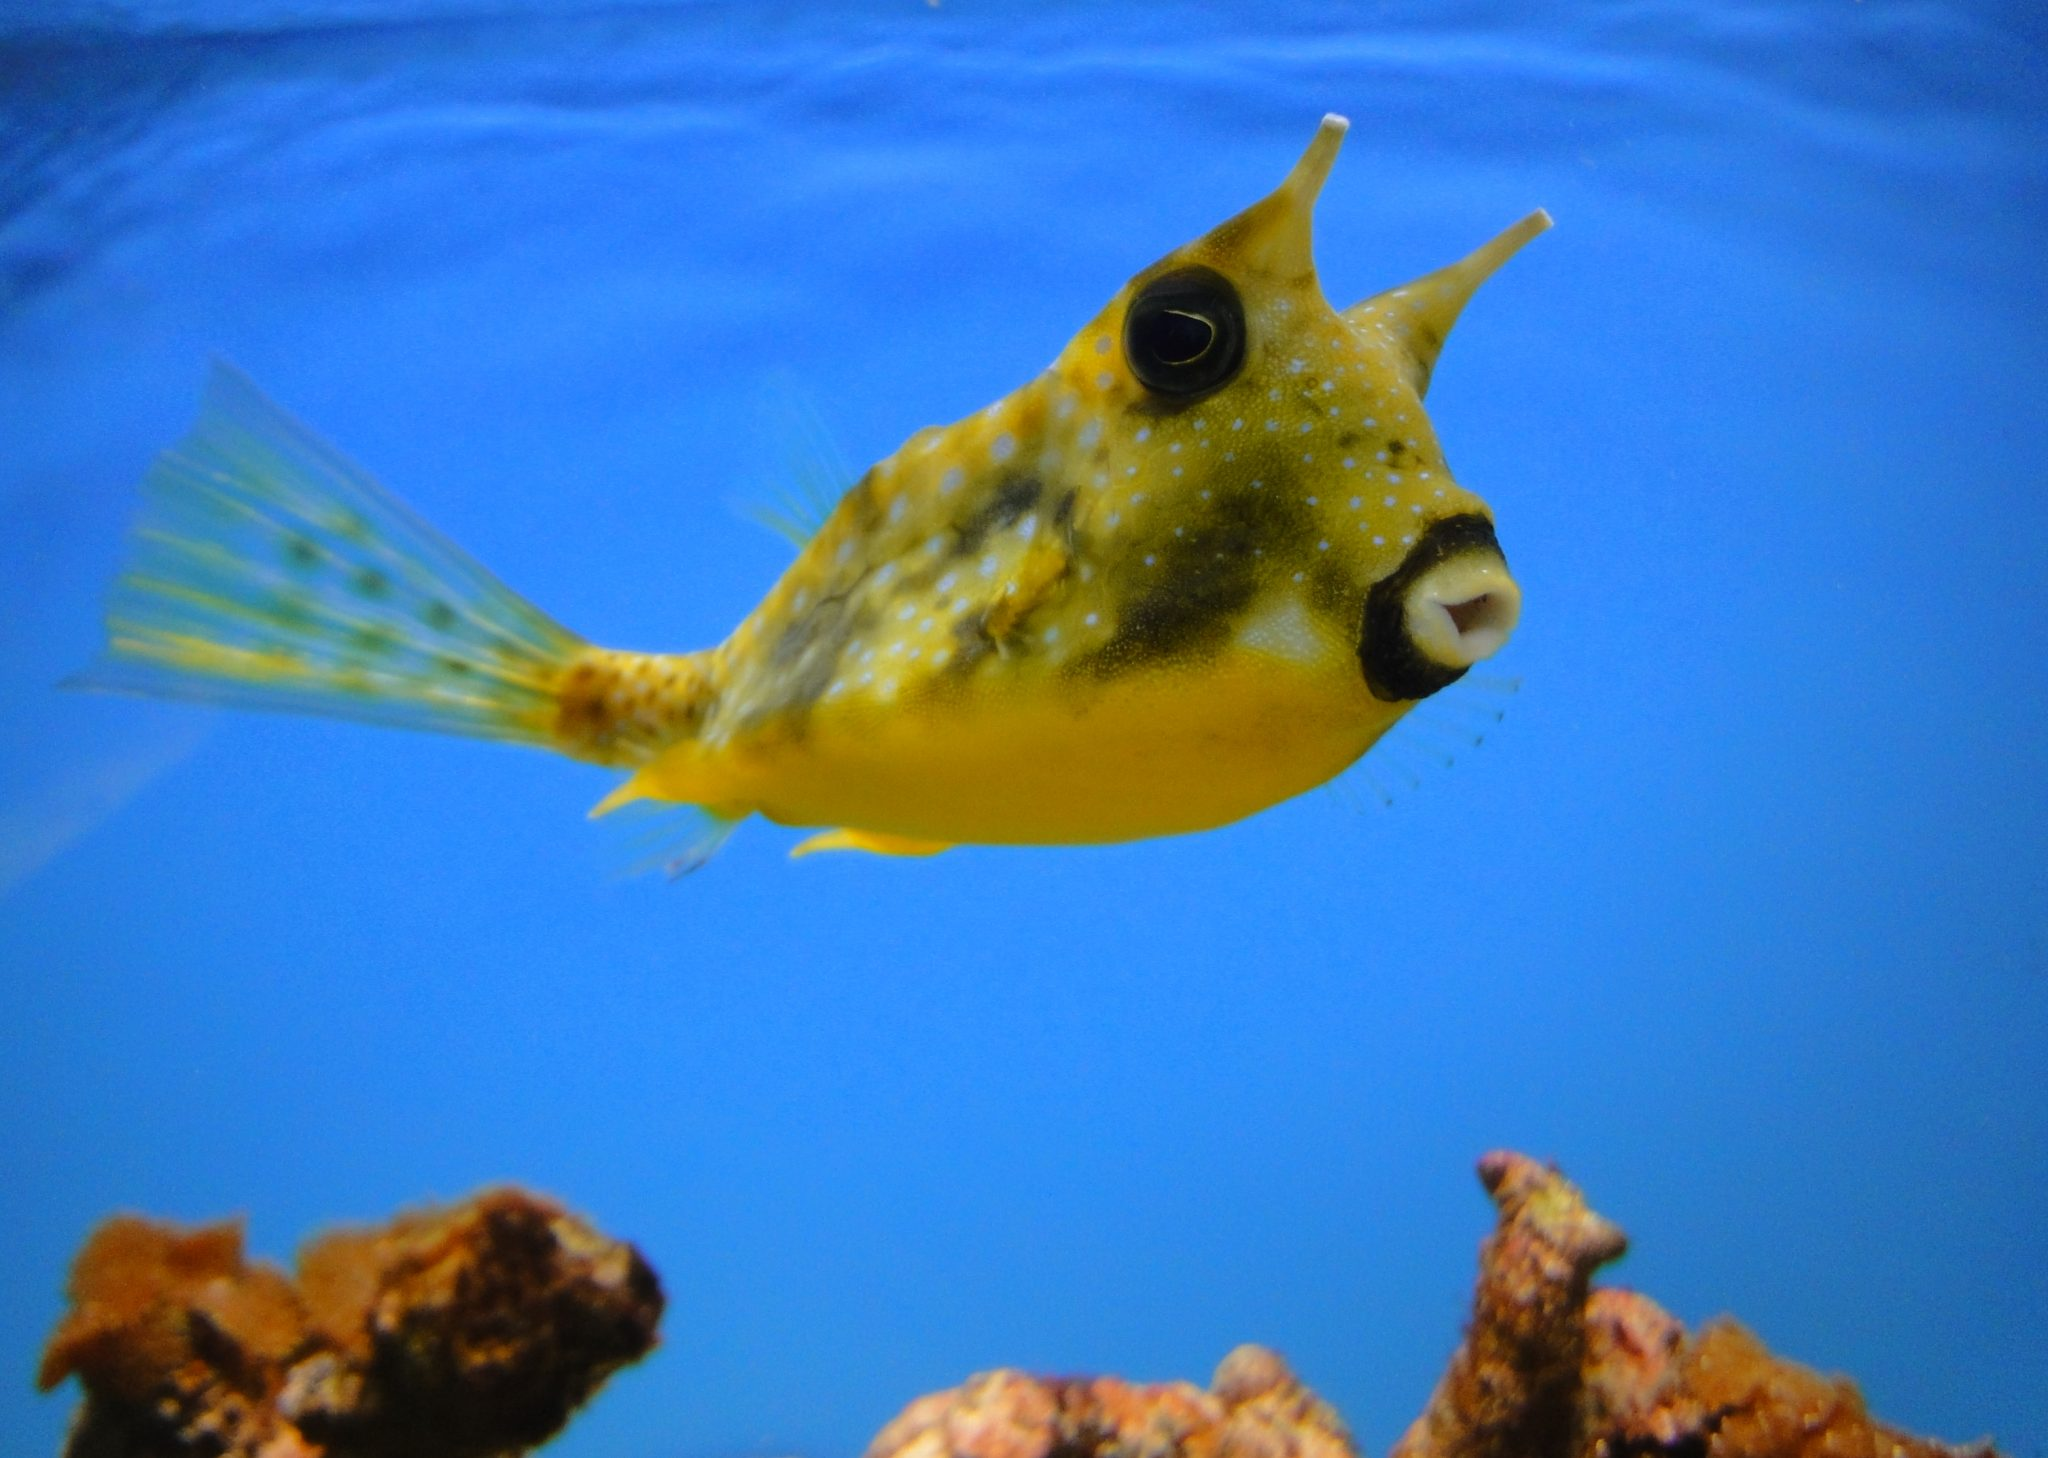 Lactoria cornuta, Long-horned cowfish